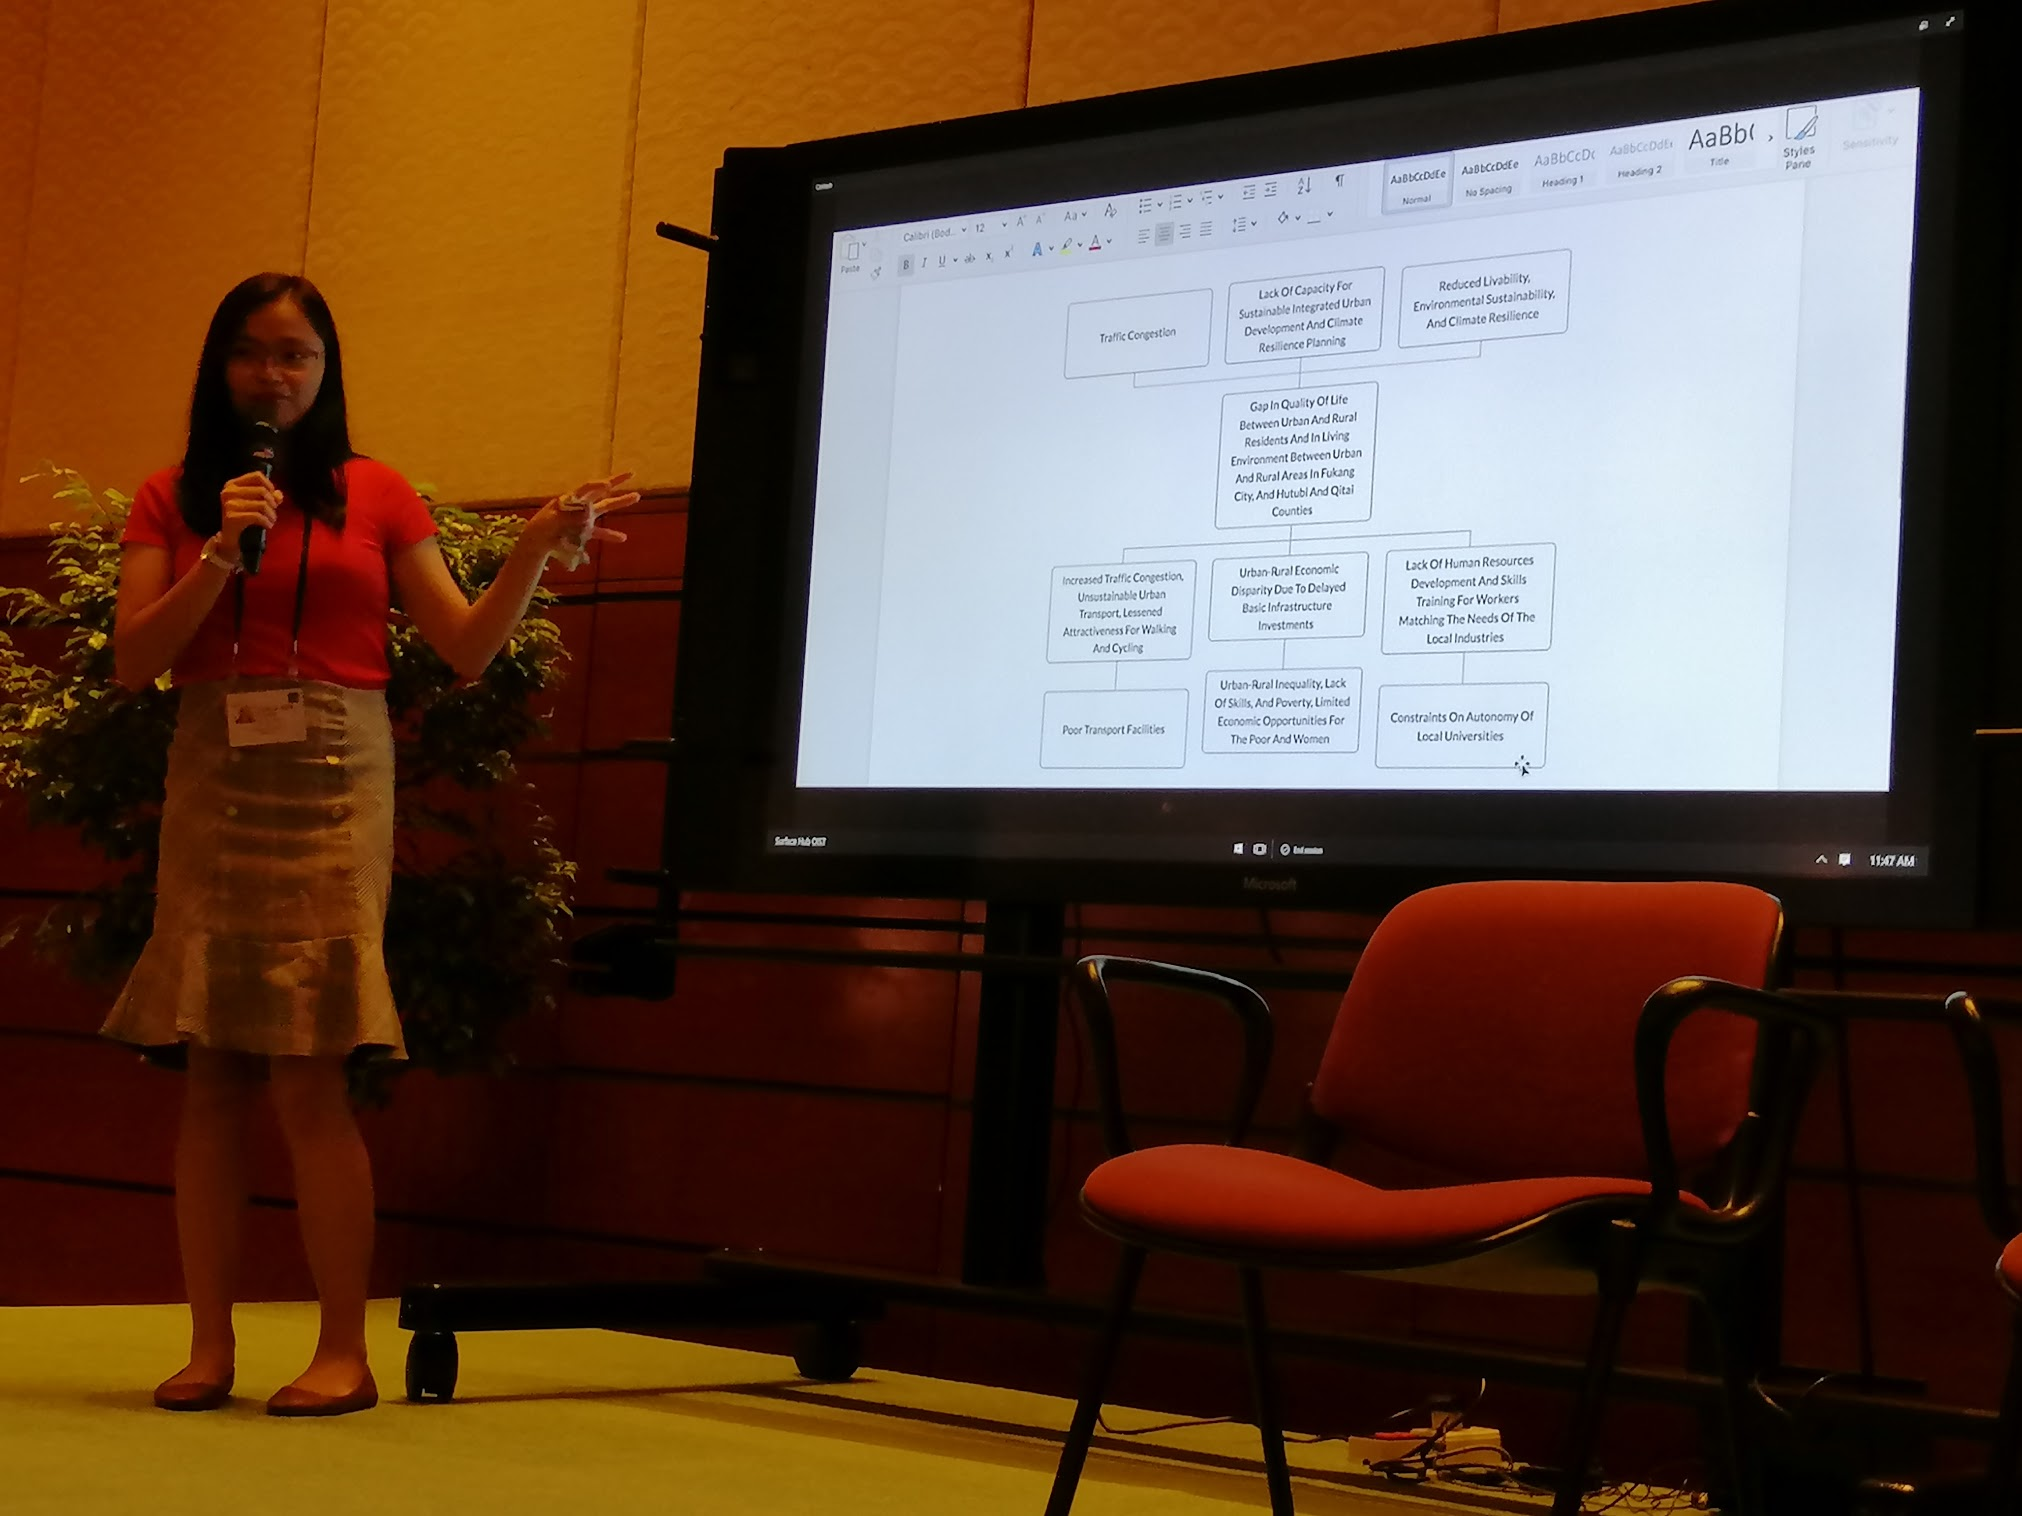 11:43 a.m. - NMI does a demo of their working model for the problem tree generator.